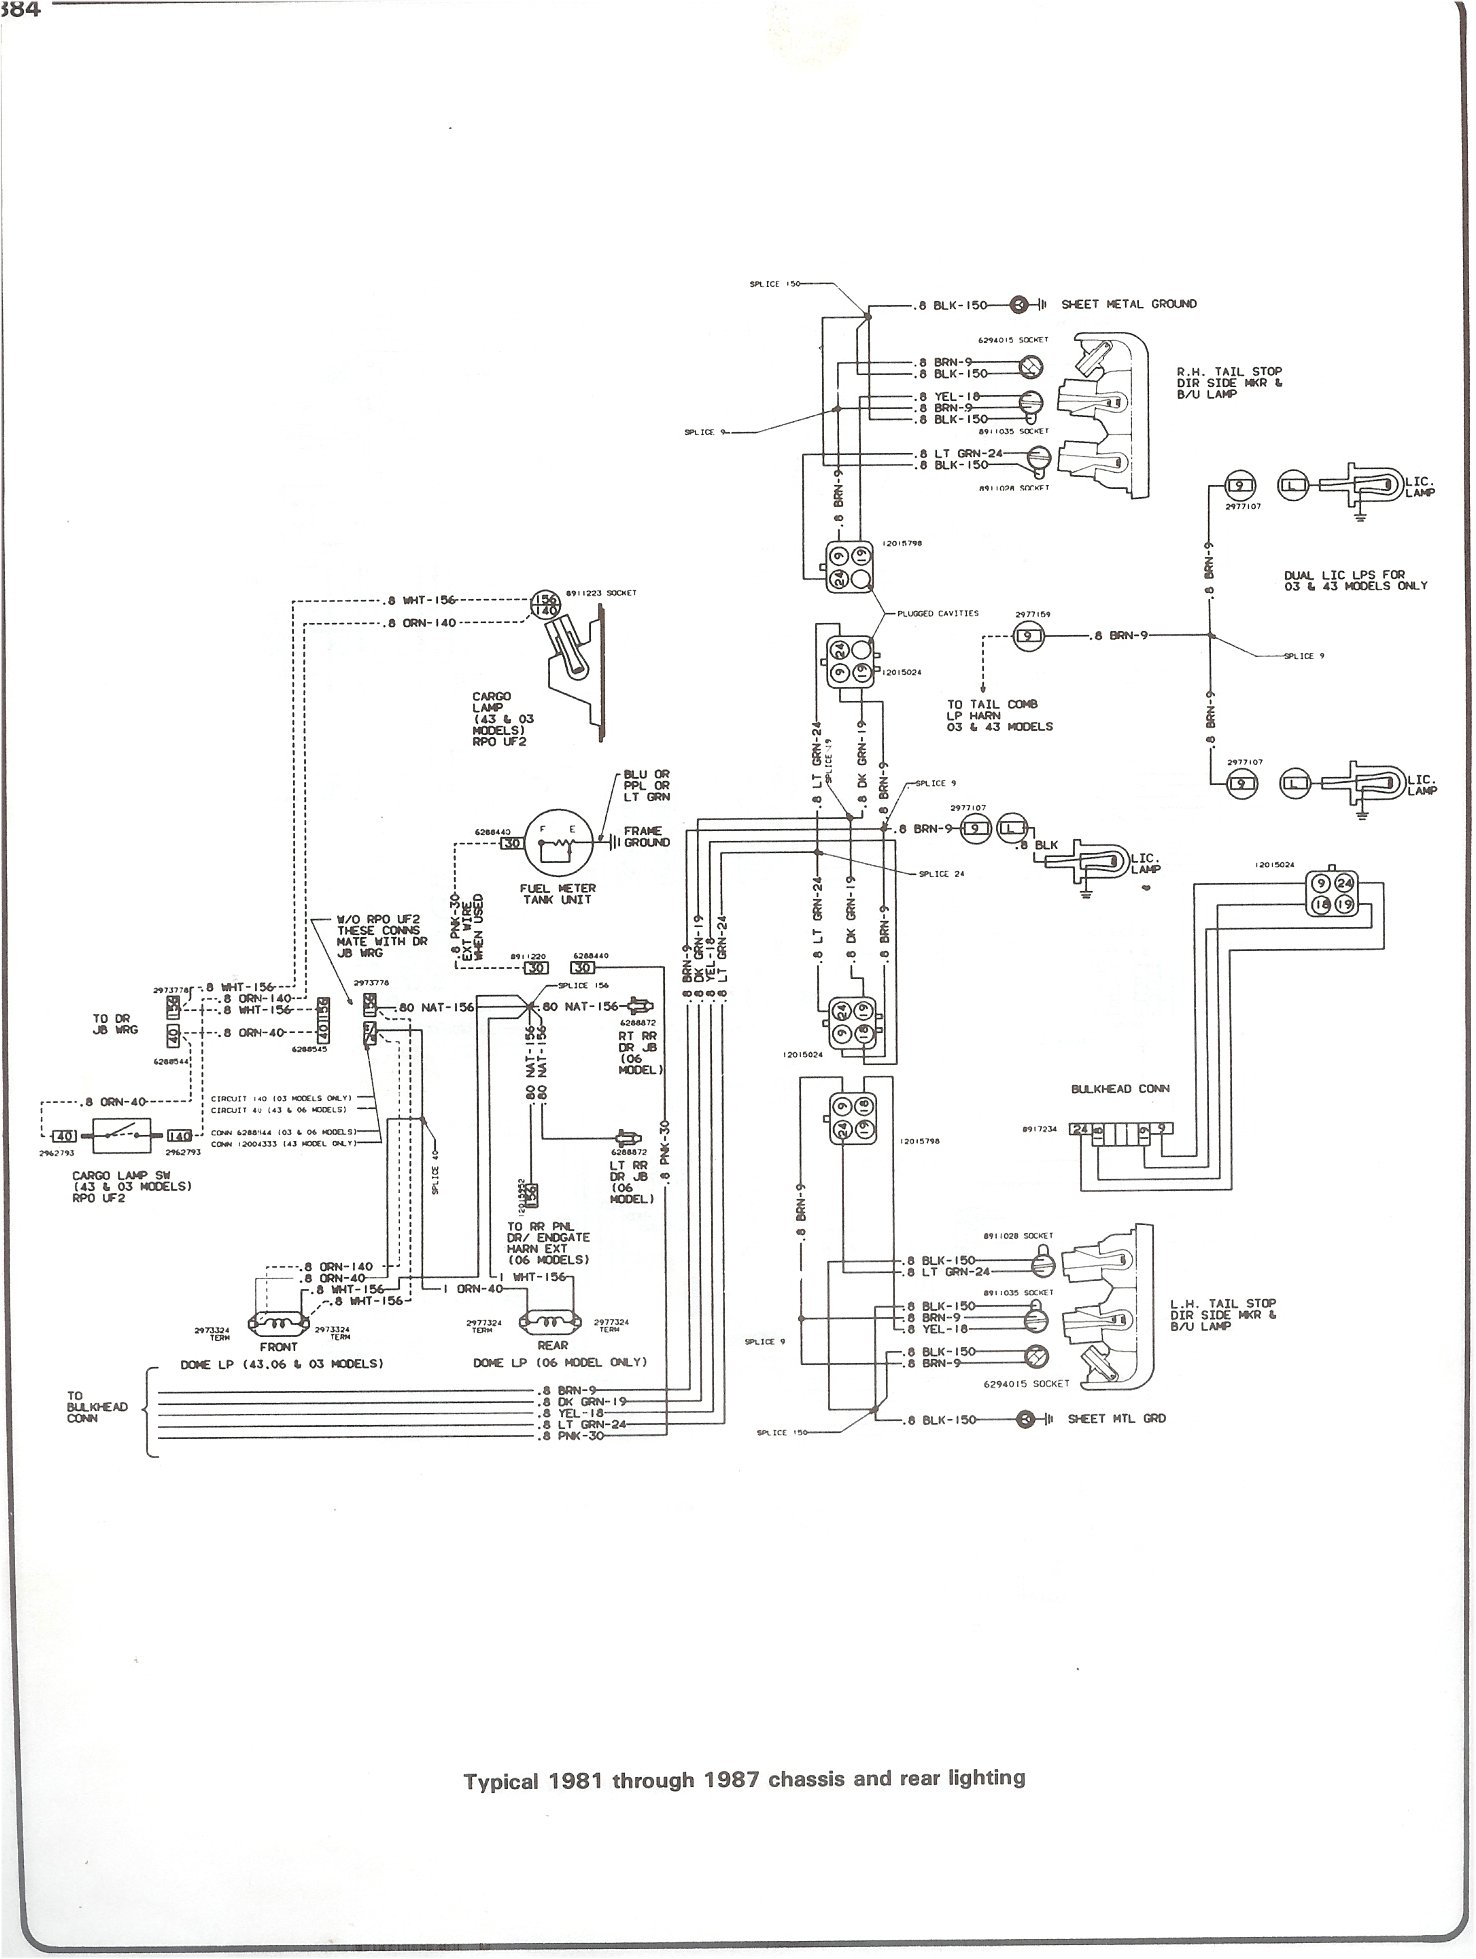 87 r10 wiring diagram schematics wiring diagrams u2022 rh seniorlivinguniversity co